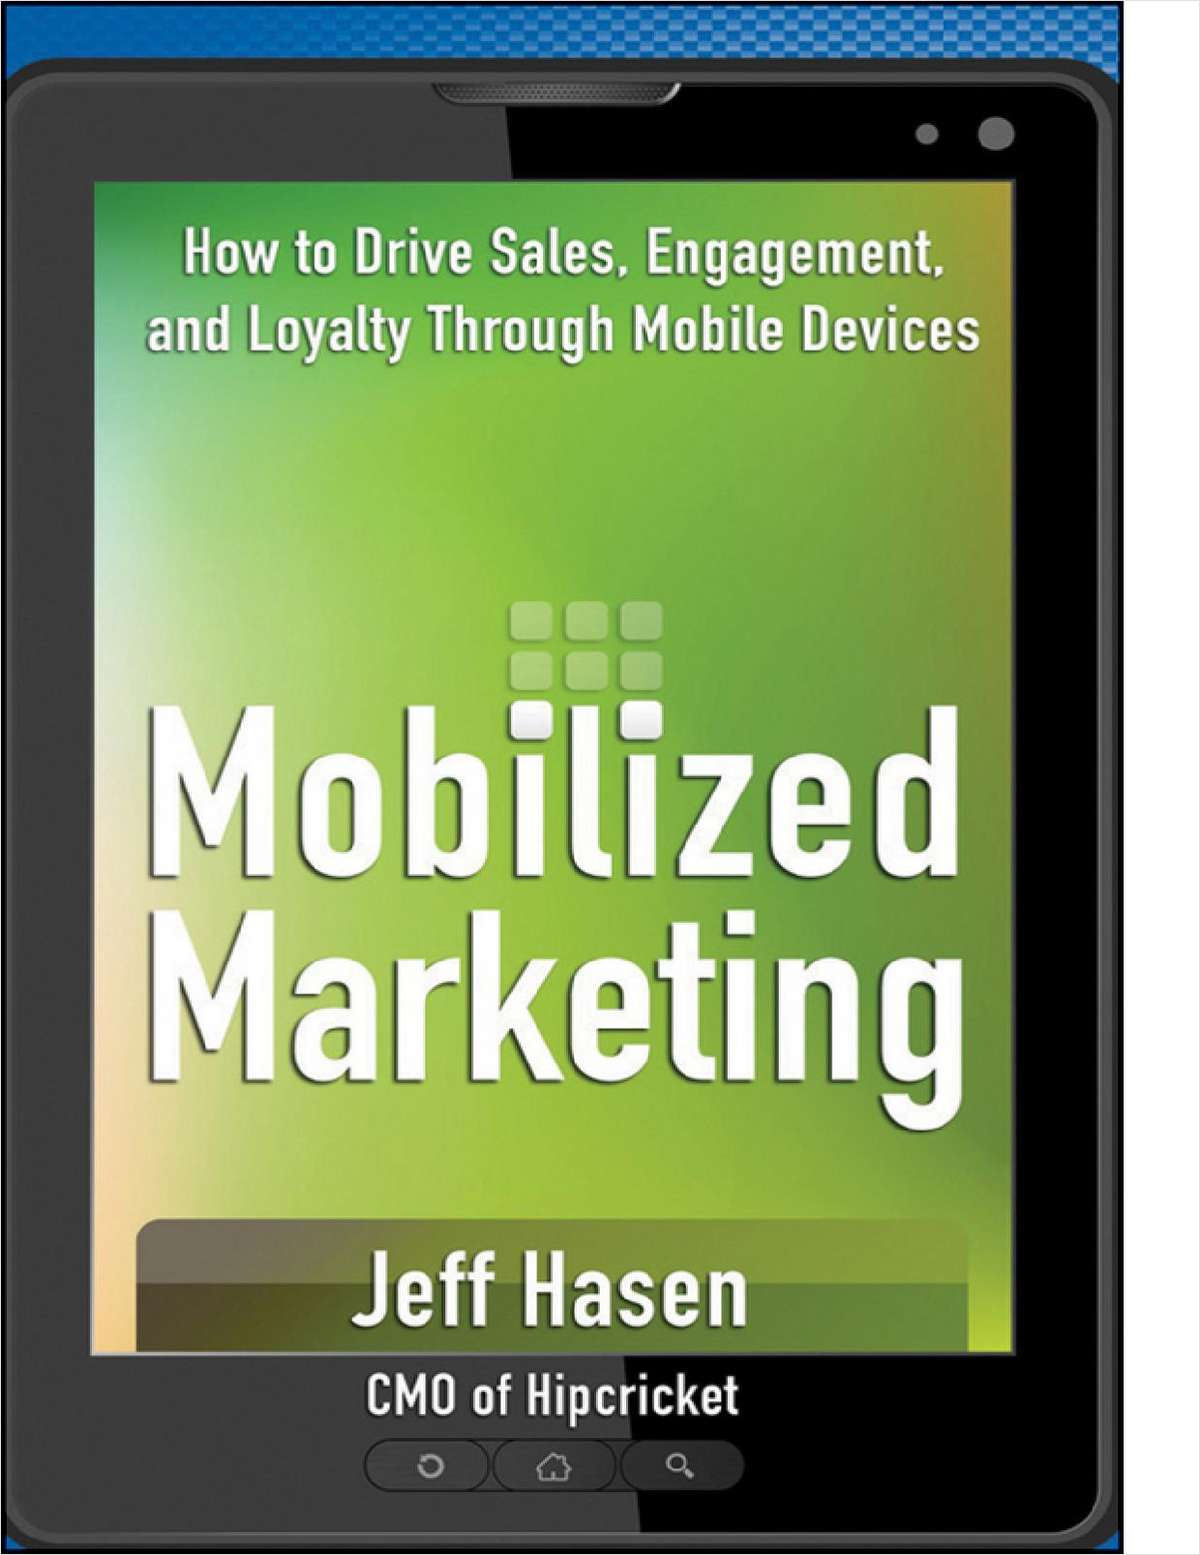 Mobilized Marketing: How to Drive Sales, Engagement, and Loyalty Through Mobile Devices-- Complimentary Excerpt